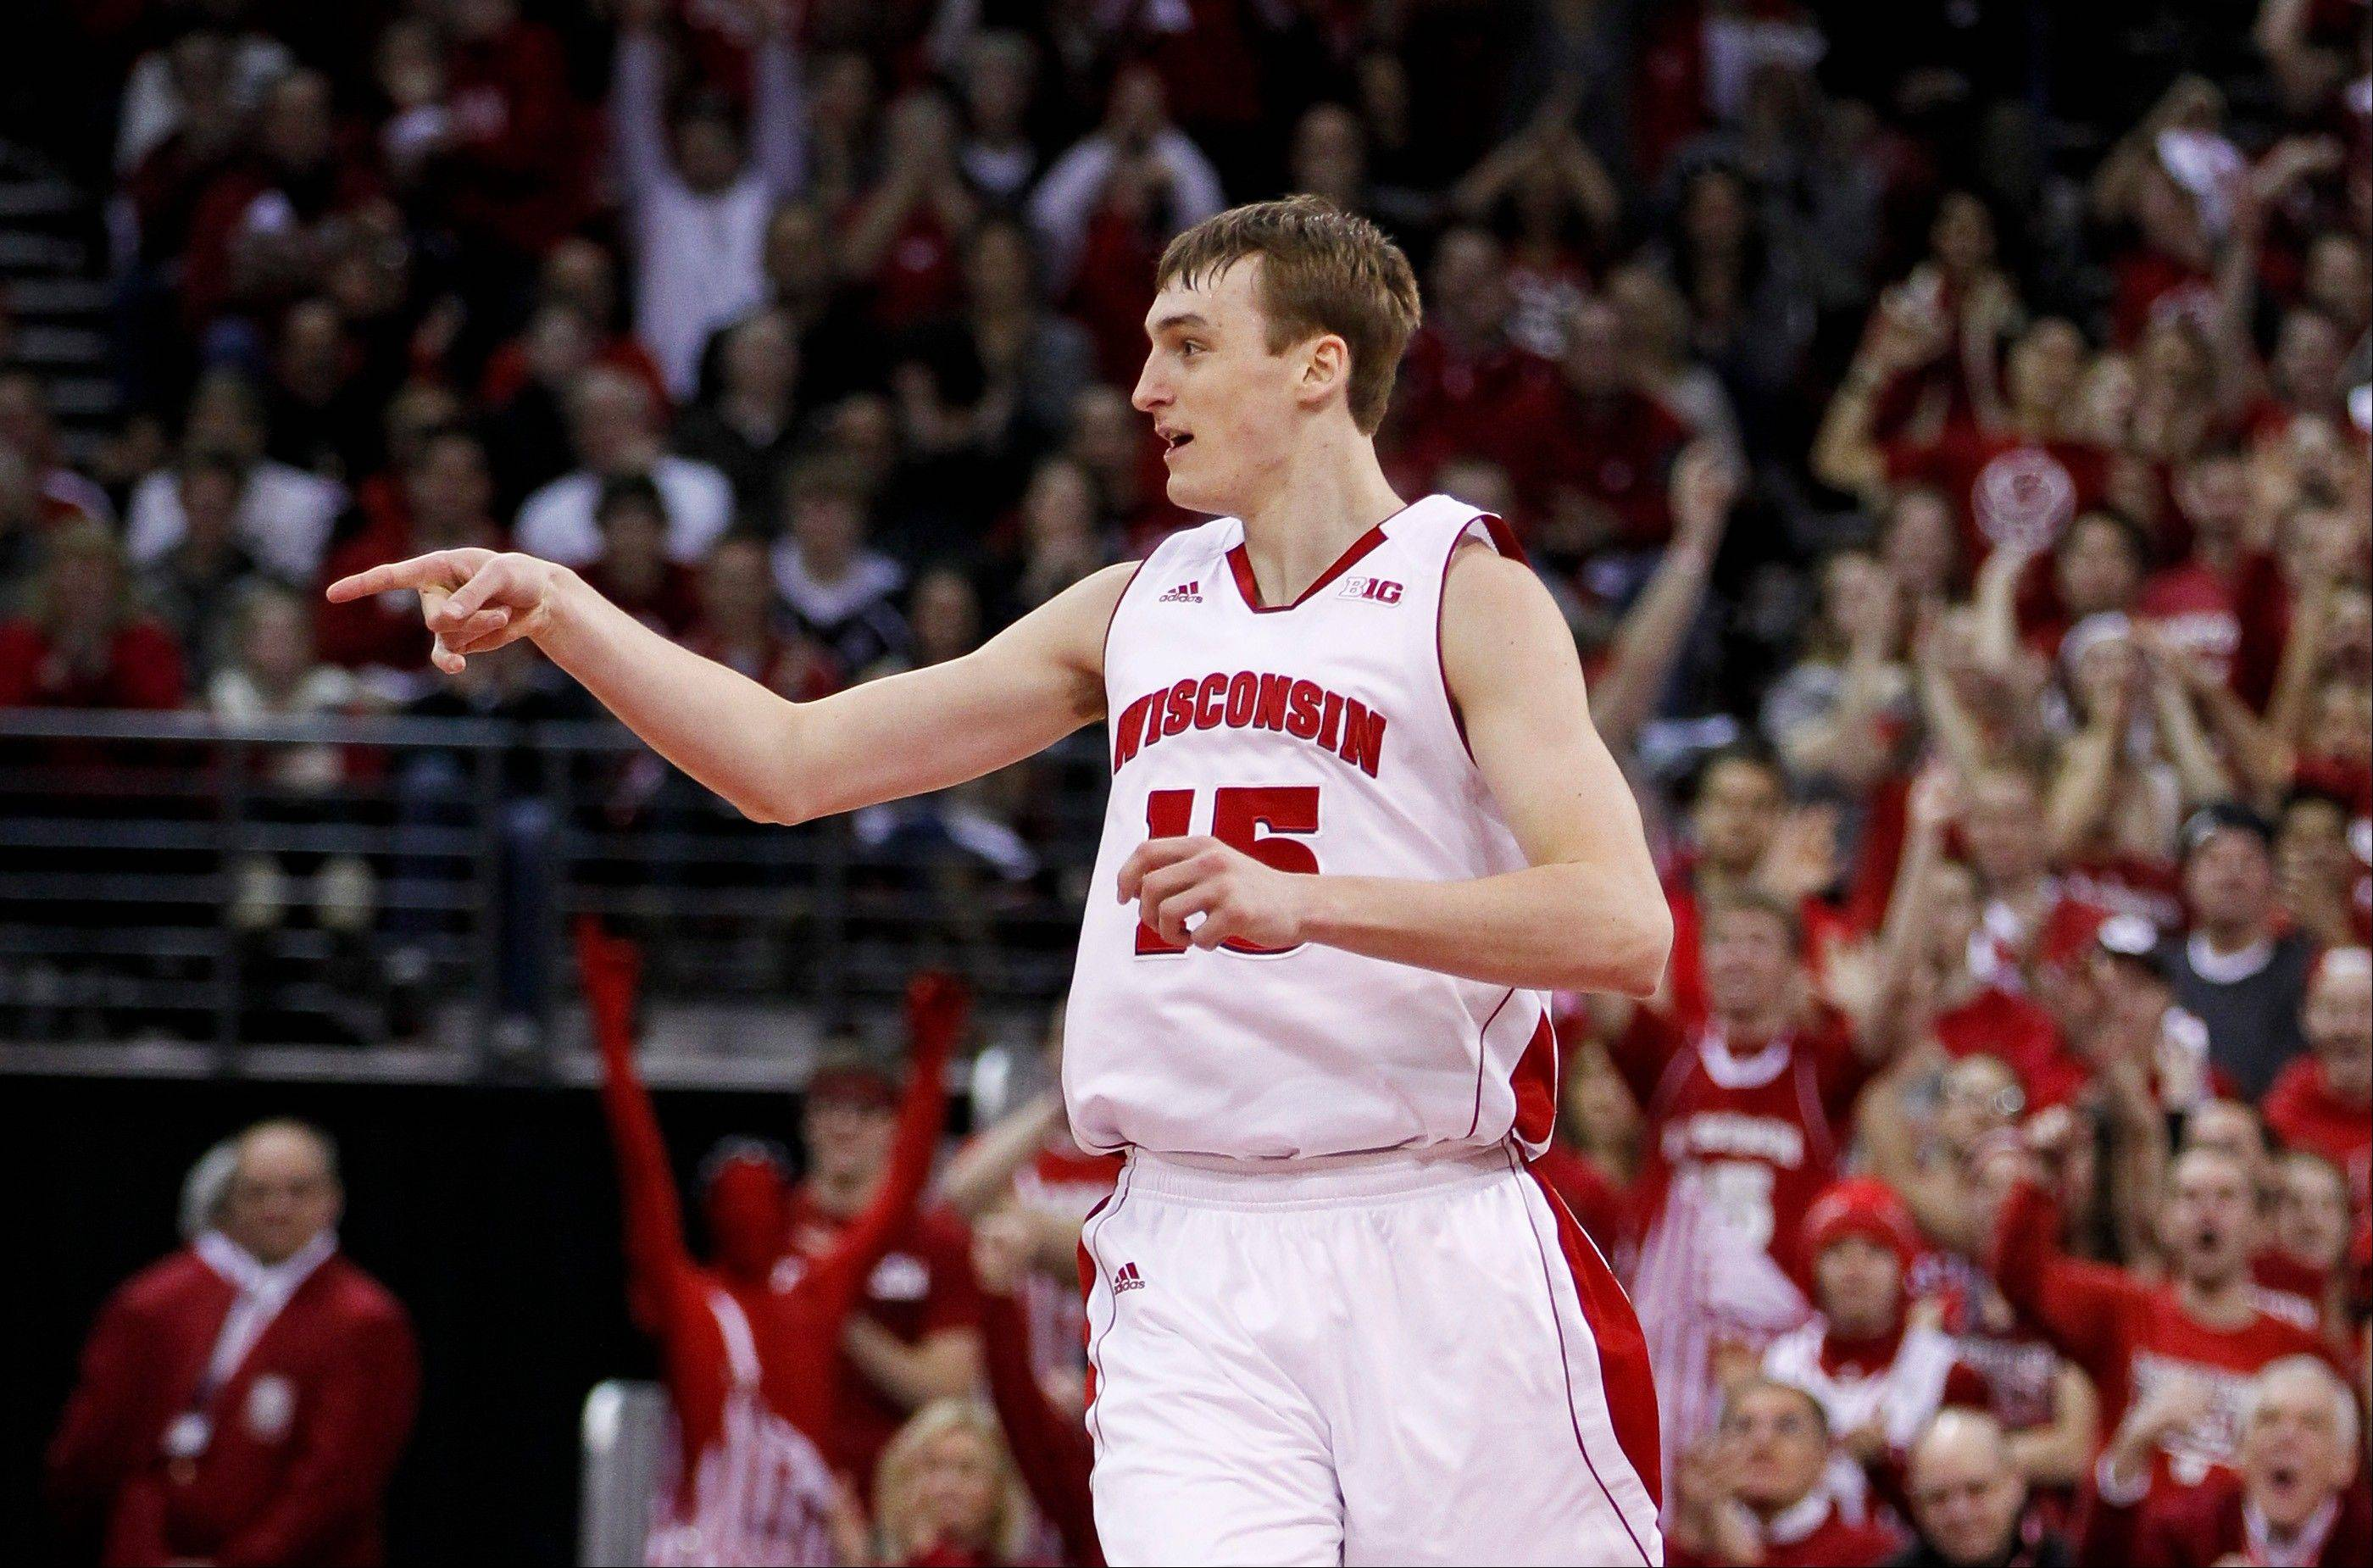 Wisconsin's Sam Dekker celebrates a 3-point basket against Ohio State during the second half Sunday in Madison, Wis. Wisconsin beat Ohio State 71-49.